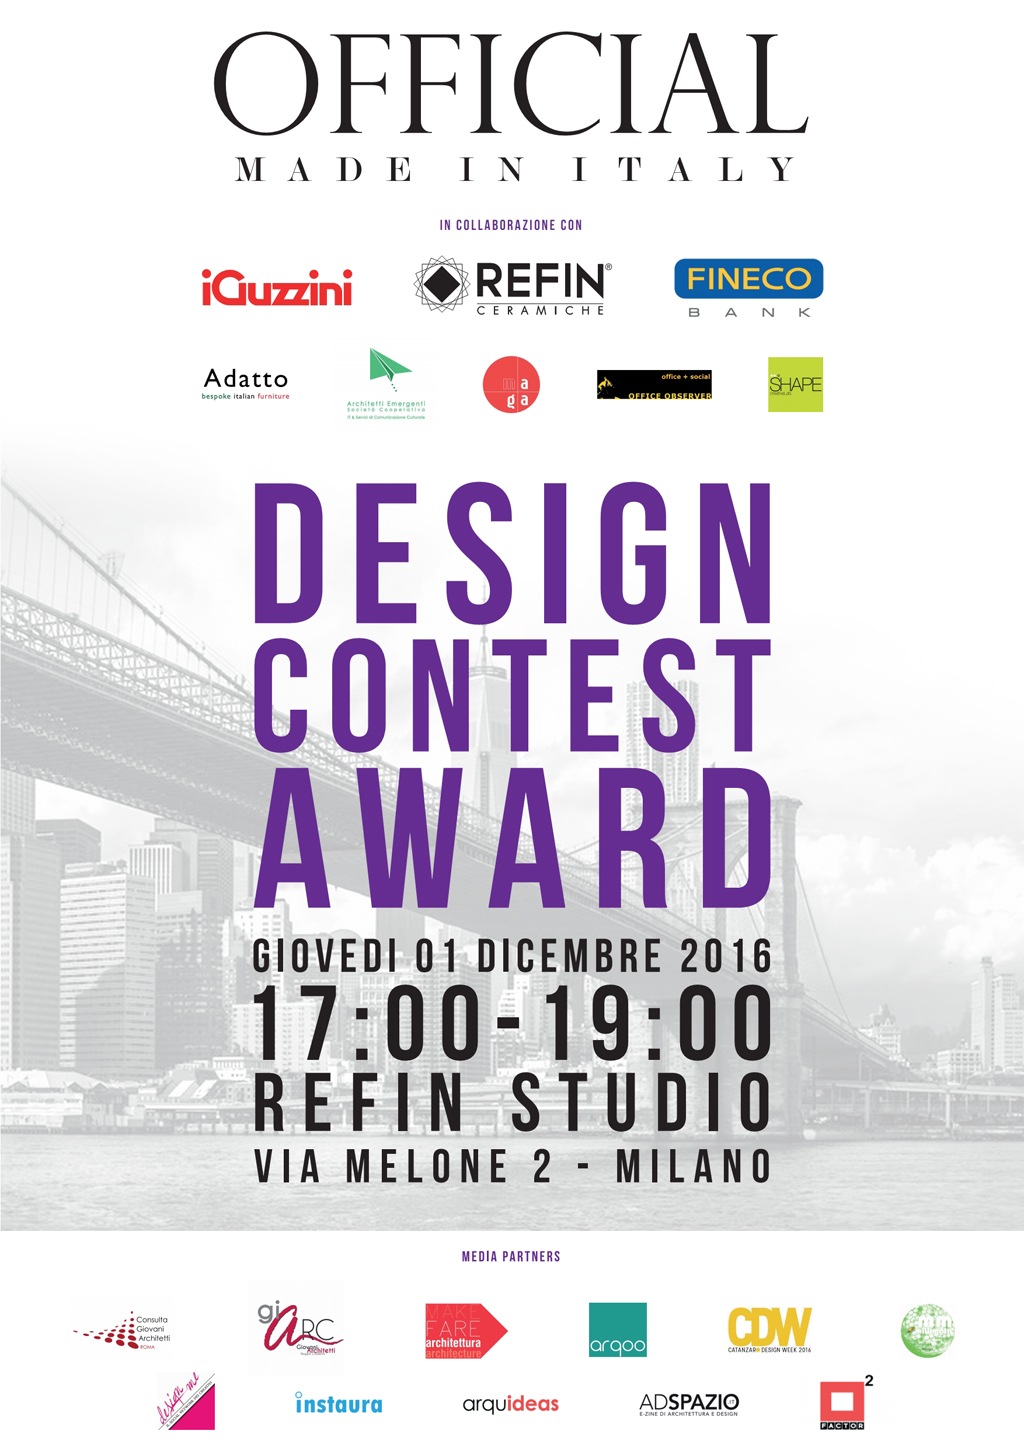 invito-officialmadeinitaly-design-contest-award